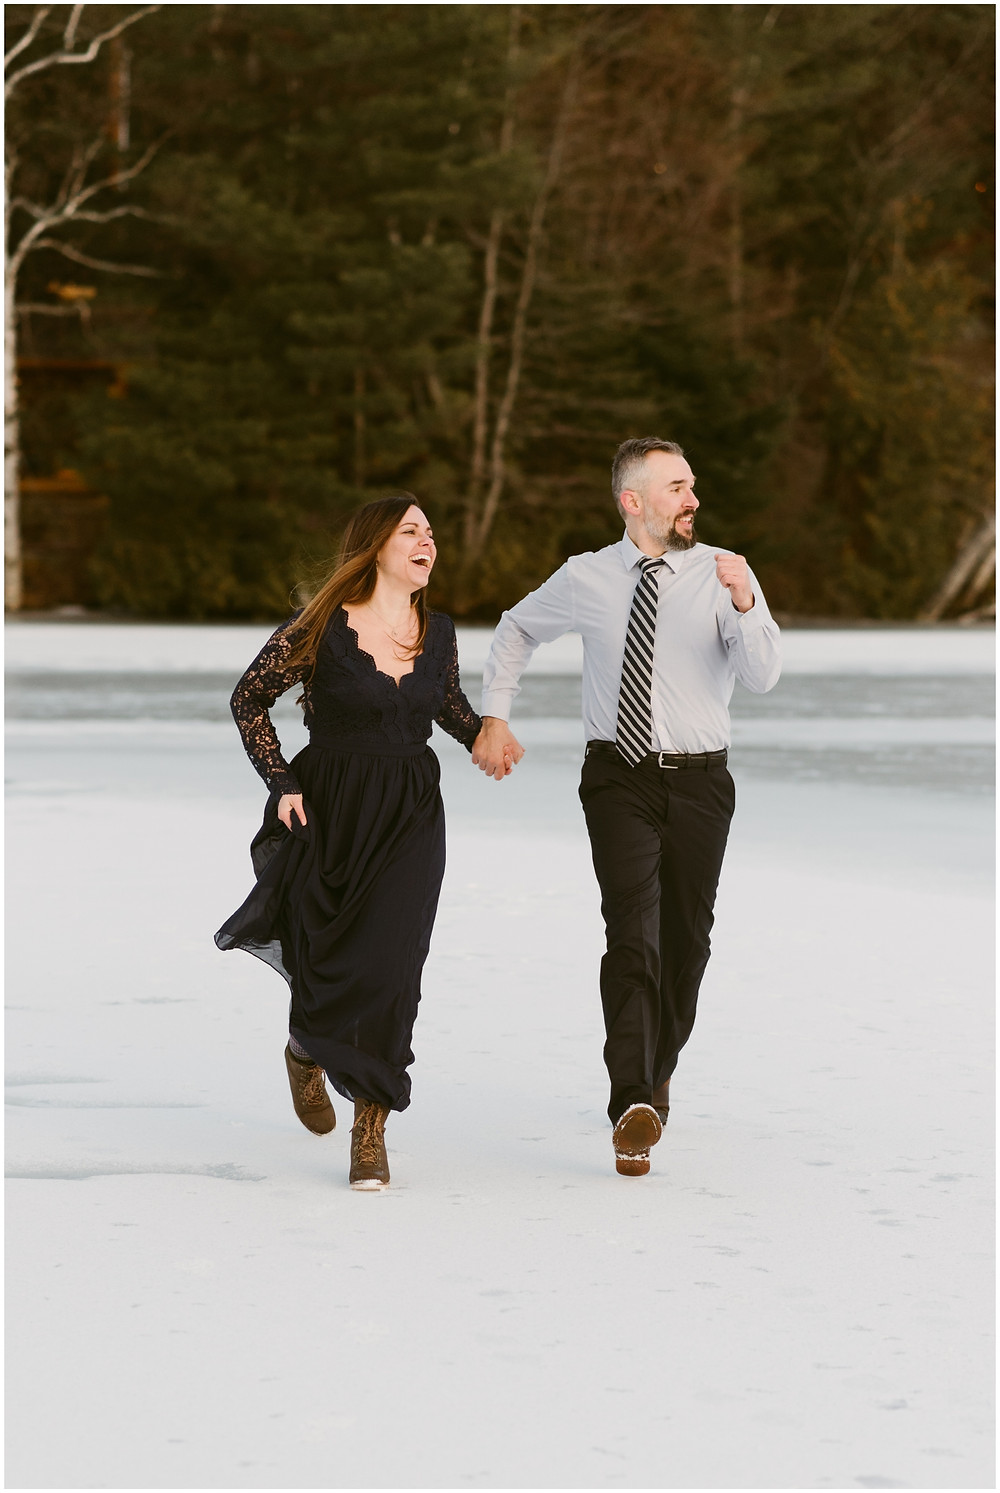 Fun engagement photography in Lake Placid by Mountainaire Gatherings